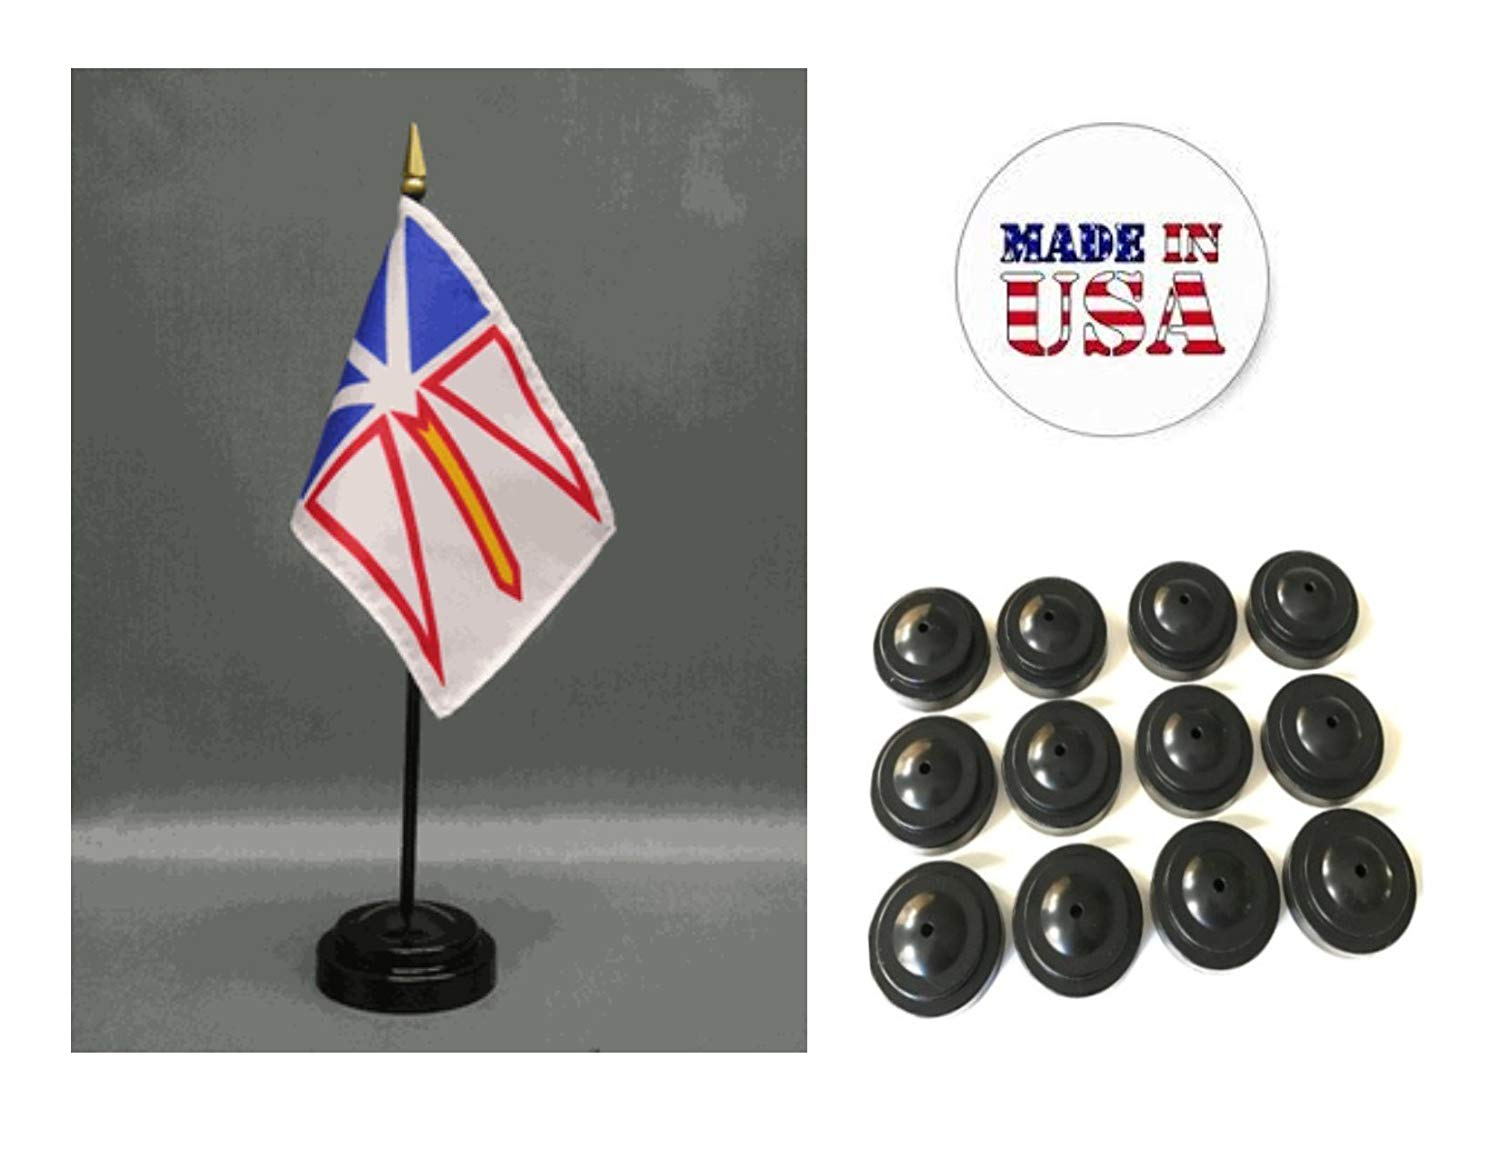 """Made in the USA!! Box of 12 Newfoundland 4""""x6"""" Miniature Desk & Table Flags Includes 12 Flag Stands & 12 Canada Newfoundland Small Mini Stick Flags"""